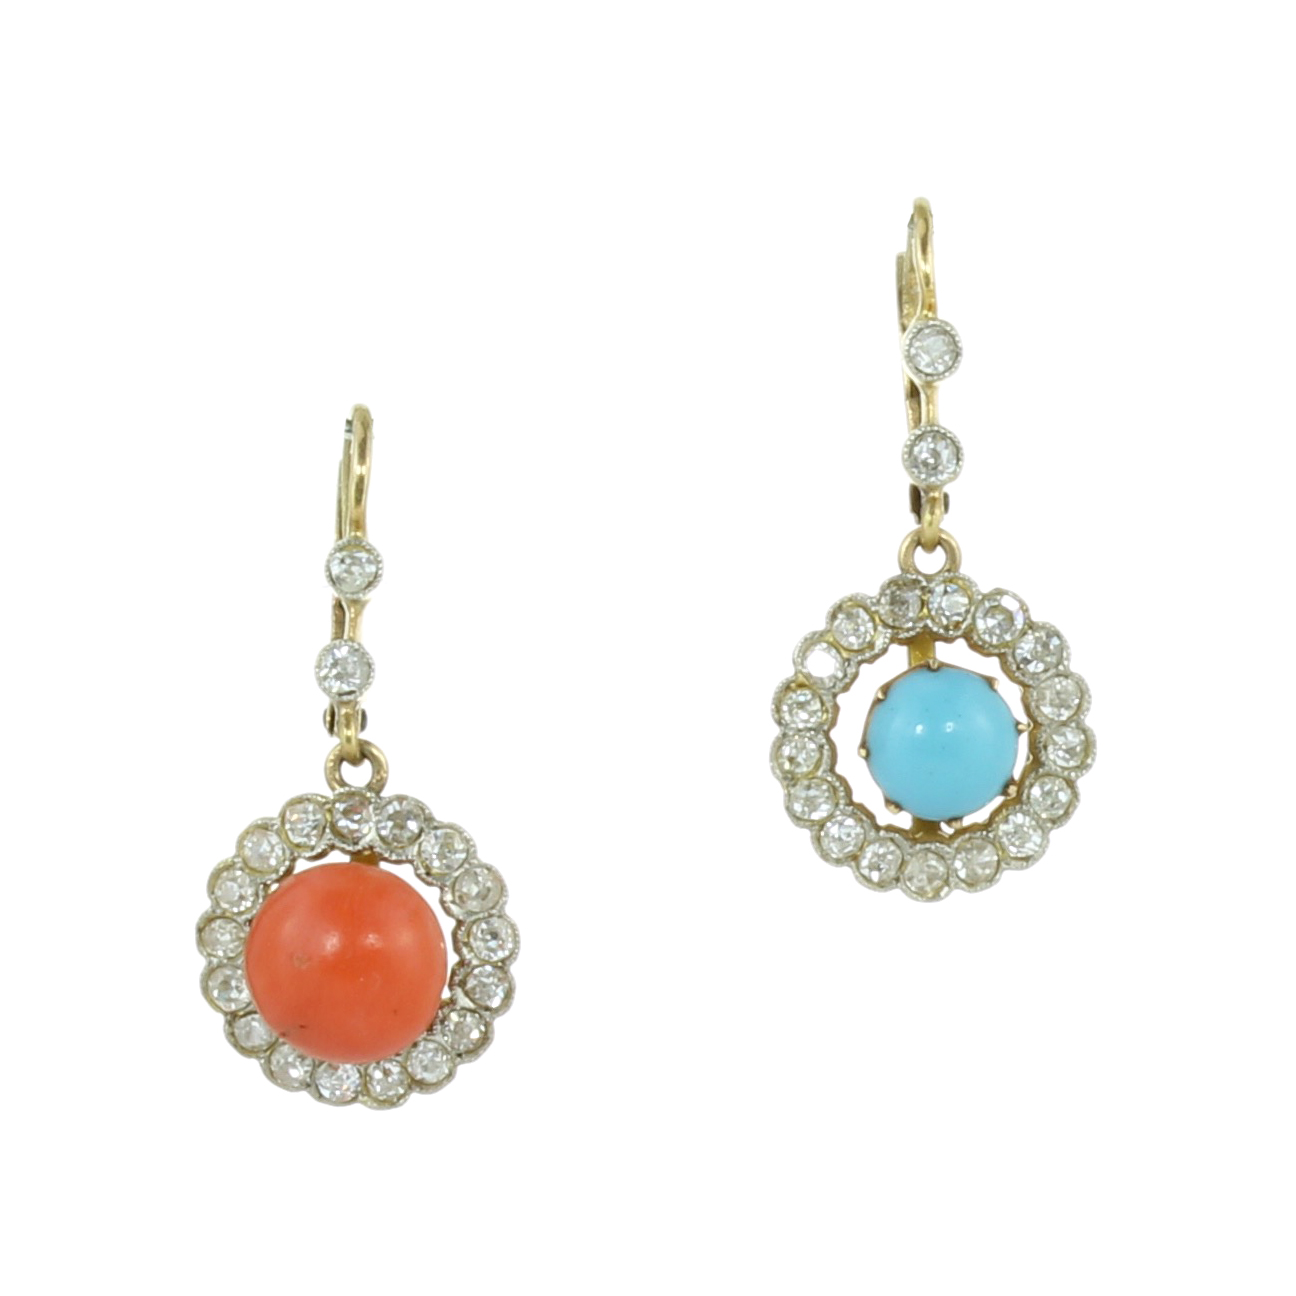 Los 17 - AN PAIR OF ANTIQUE INTERCHANGEABLE CORAL / TURQUOISE AND DIAMOND CLUSTER EARRINGS in high carat